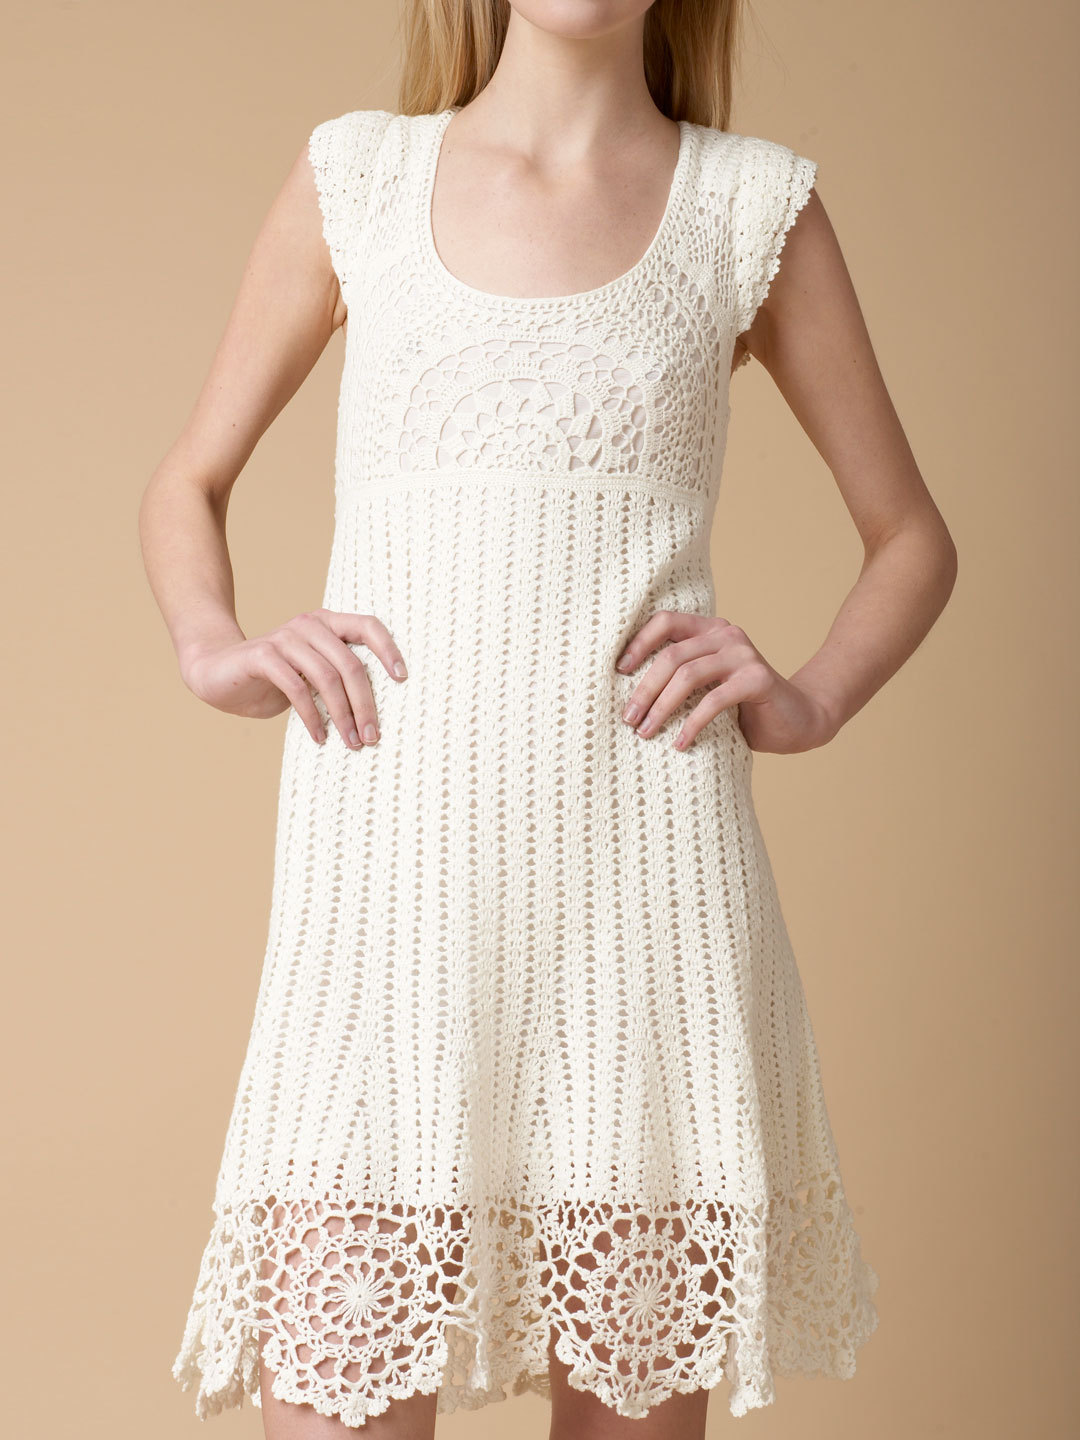 Crochet Clothing : Enchanted Crochet Dress